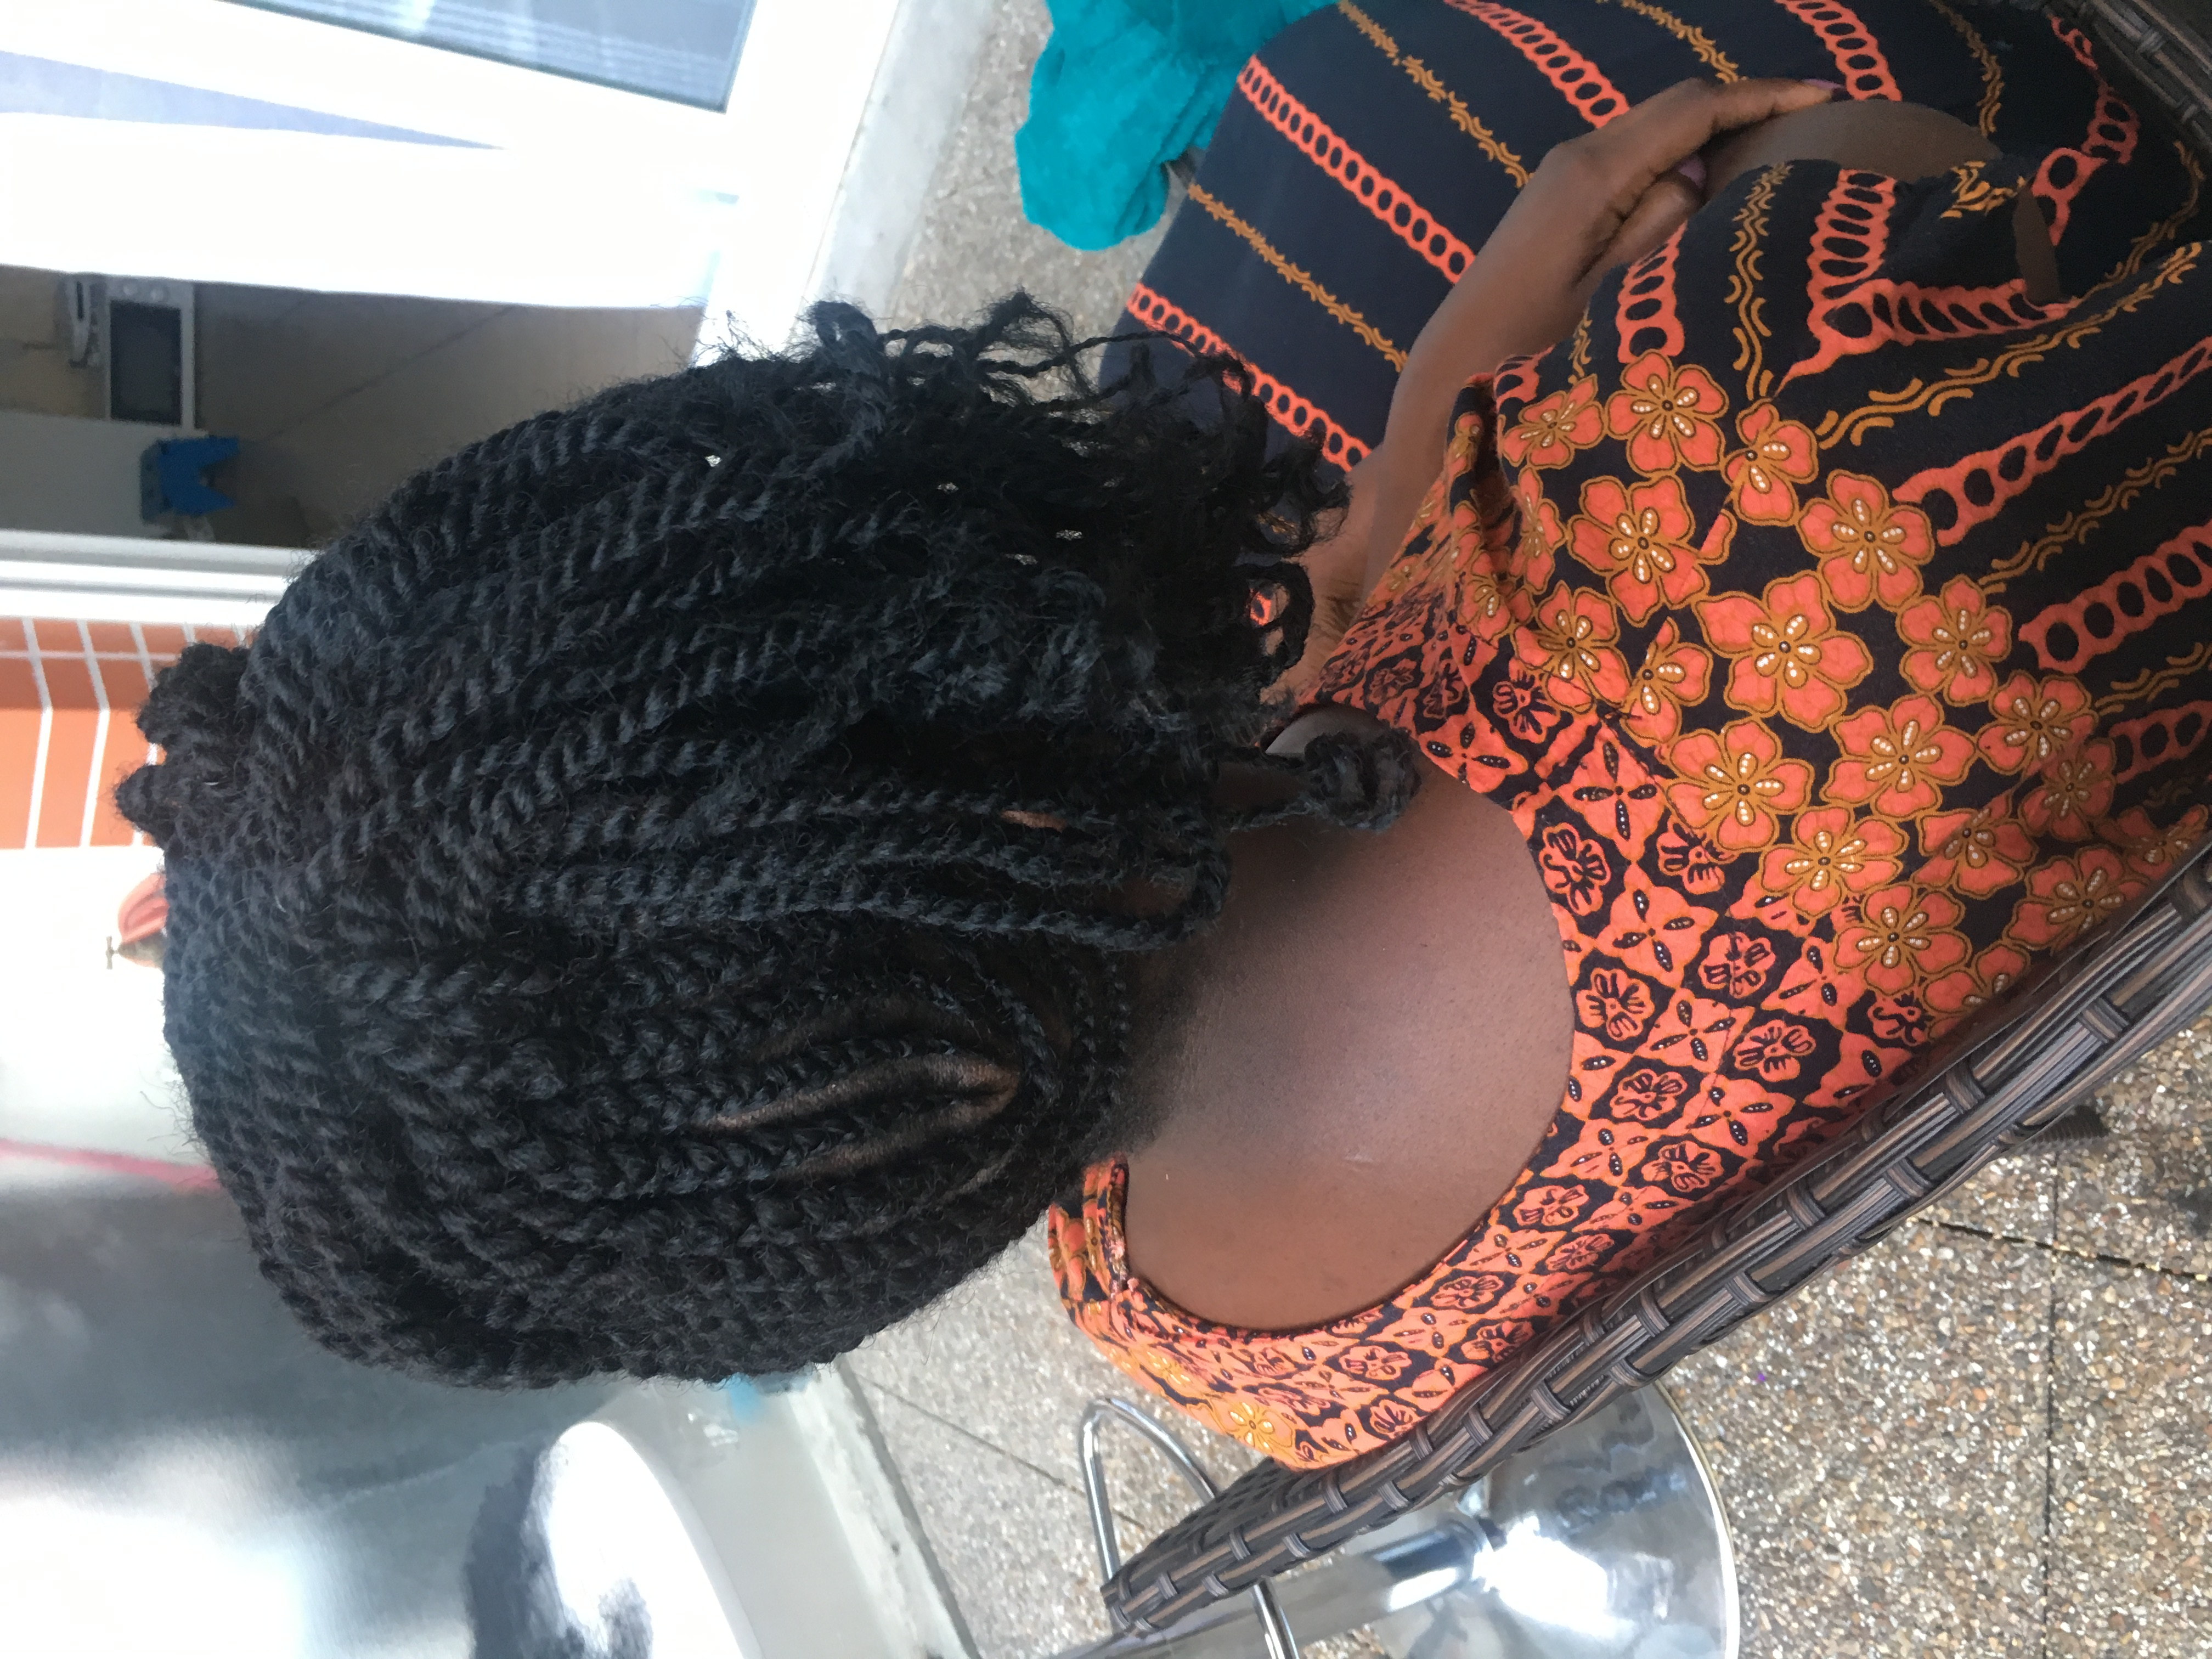 salon de coiffure afro tresse tresses box braids crochet braids vanilles tissages paris 75 77 78 91 92 93 94 95 AJTUZLGD